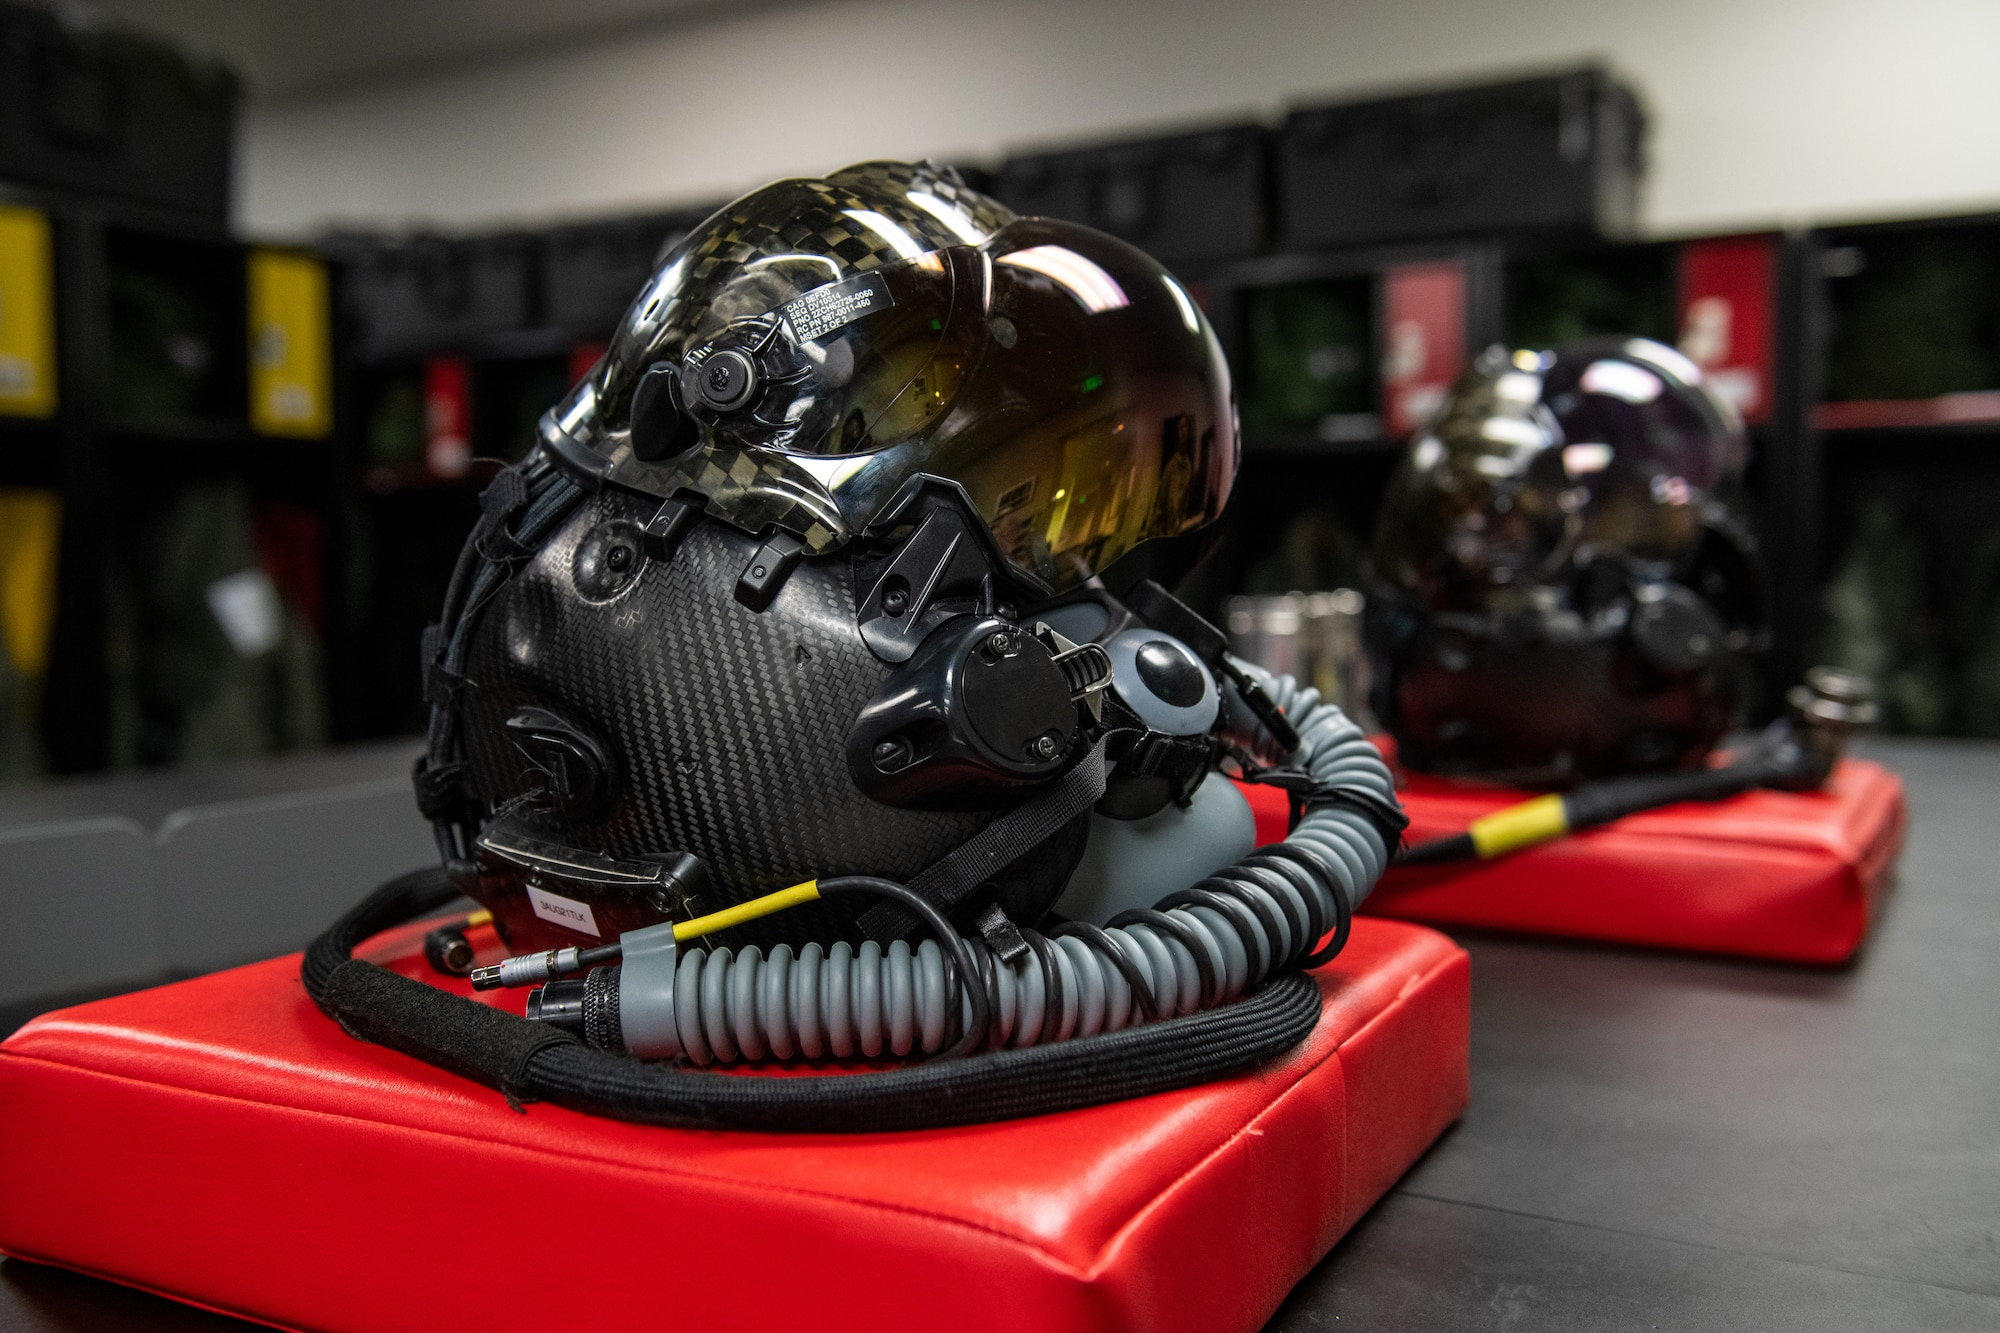 Designed to work with the F-35 Lightning II, the custom-fitted helmet serves to increase pilot responsiveness through enhanced situational awareness. Real-time imagery from the aircraft's six exterior cameras is streamed onto the helmet's display providing the pilot a view that would otherwise be obscured.